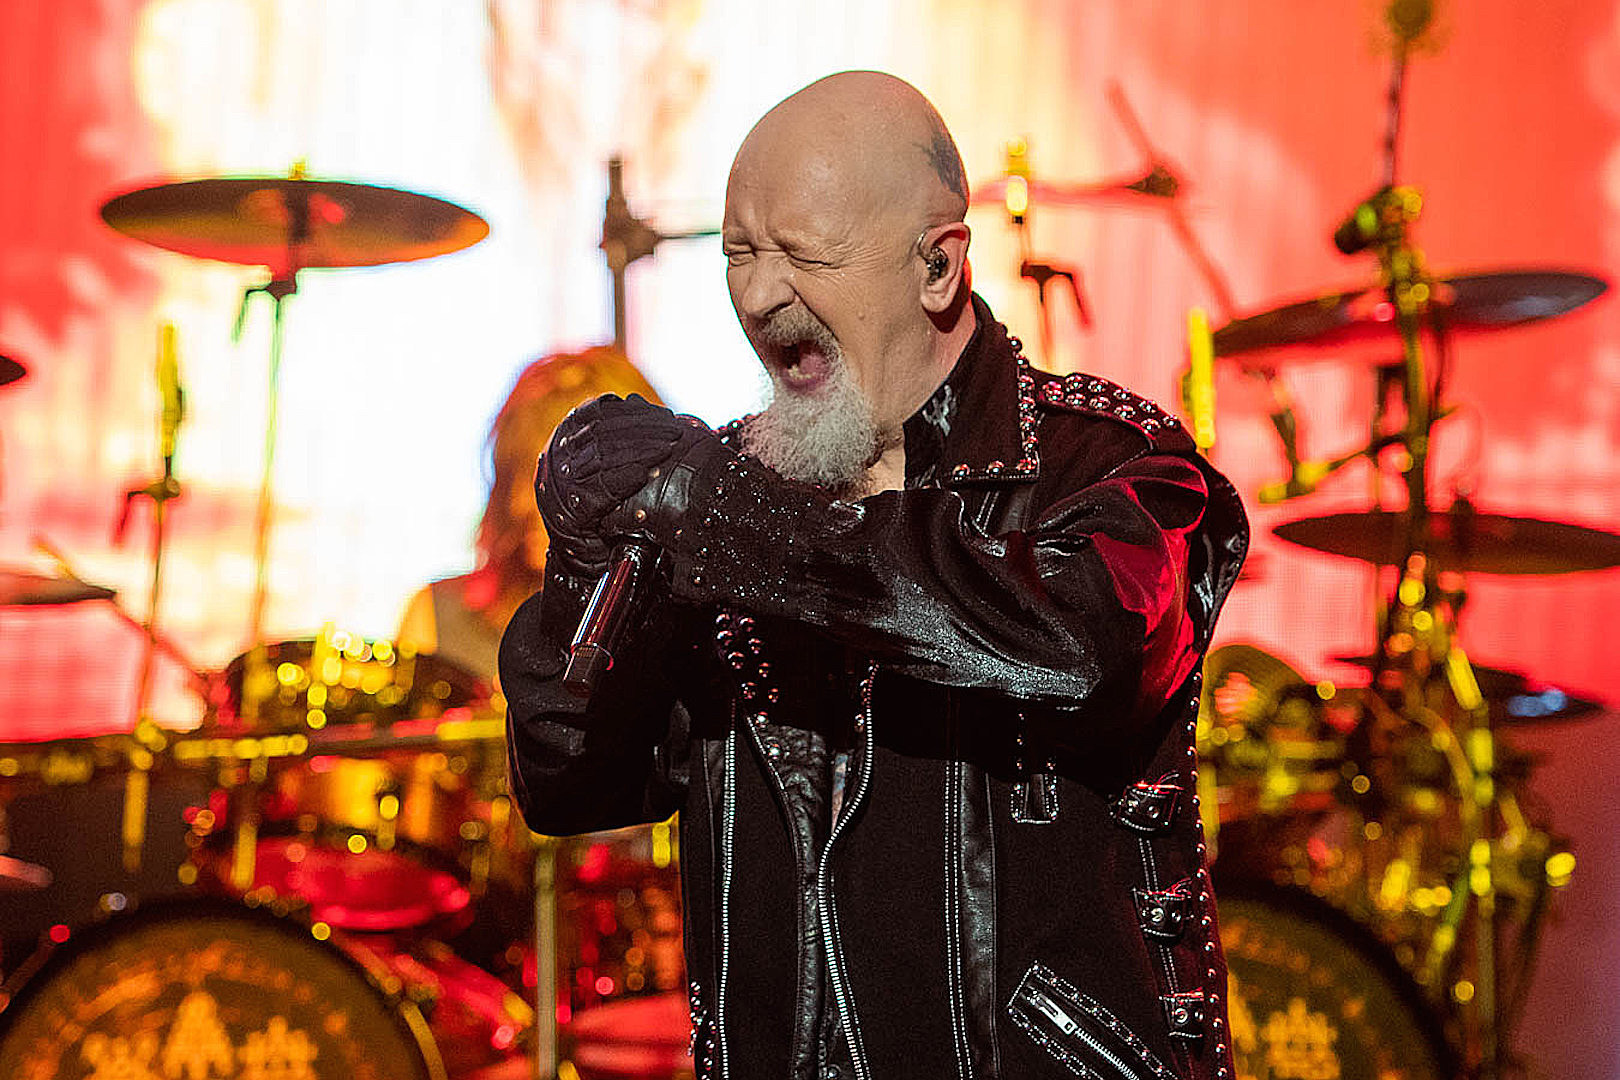 Rob Halford Asks Metalheads to 'Step Up' + Get COVID-19 Vaccine